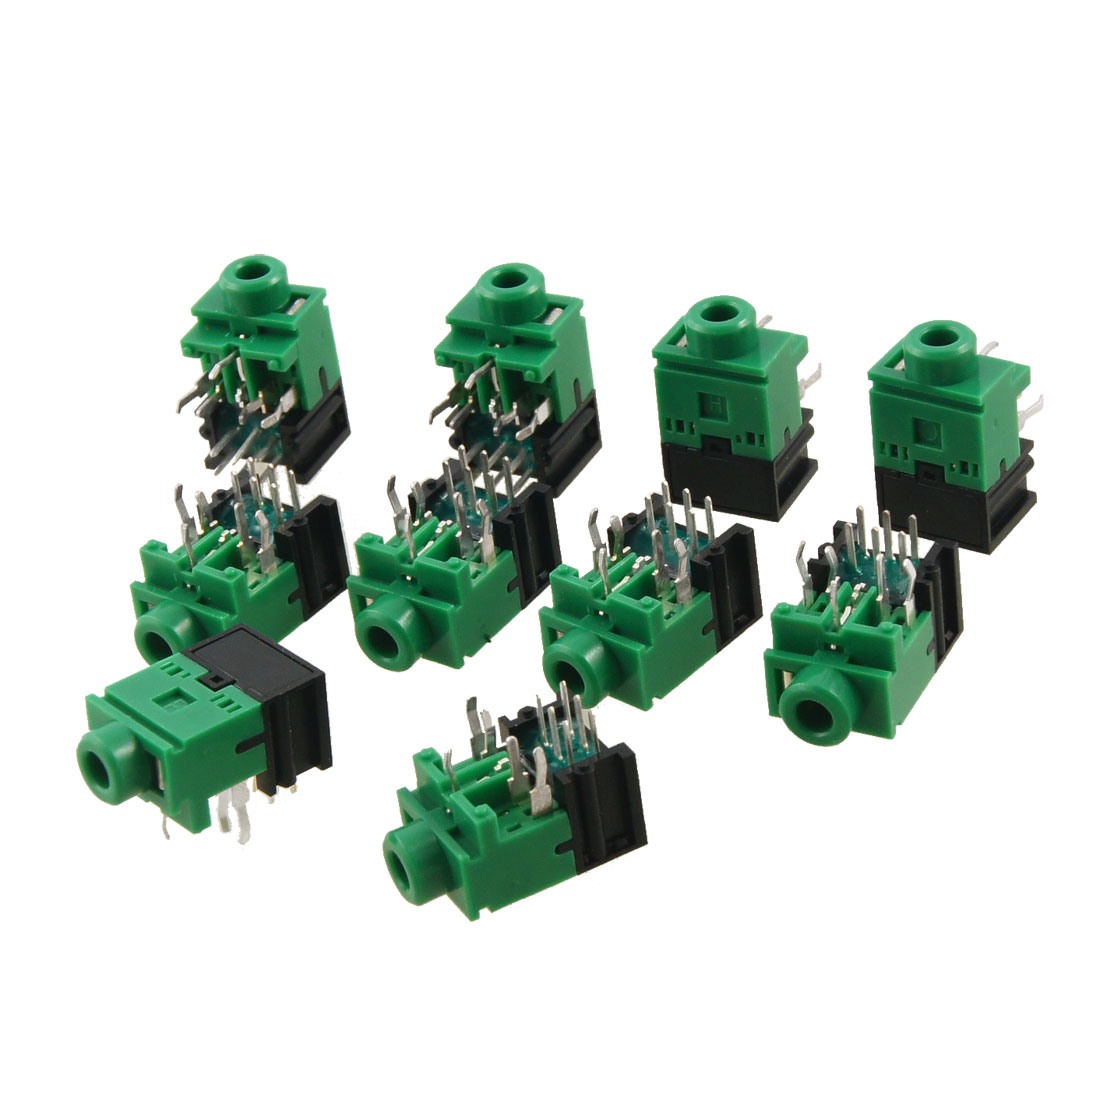 10 Pcs 11 Pin PCB Mount Female 3.5mm Stereo Jack Socket Connector